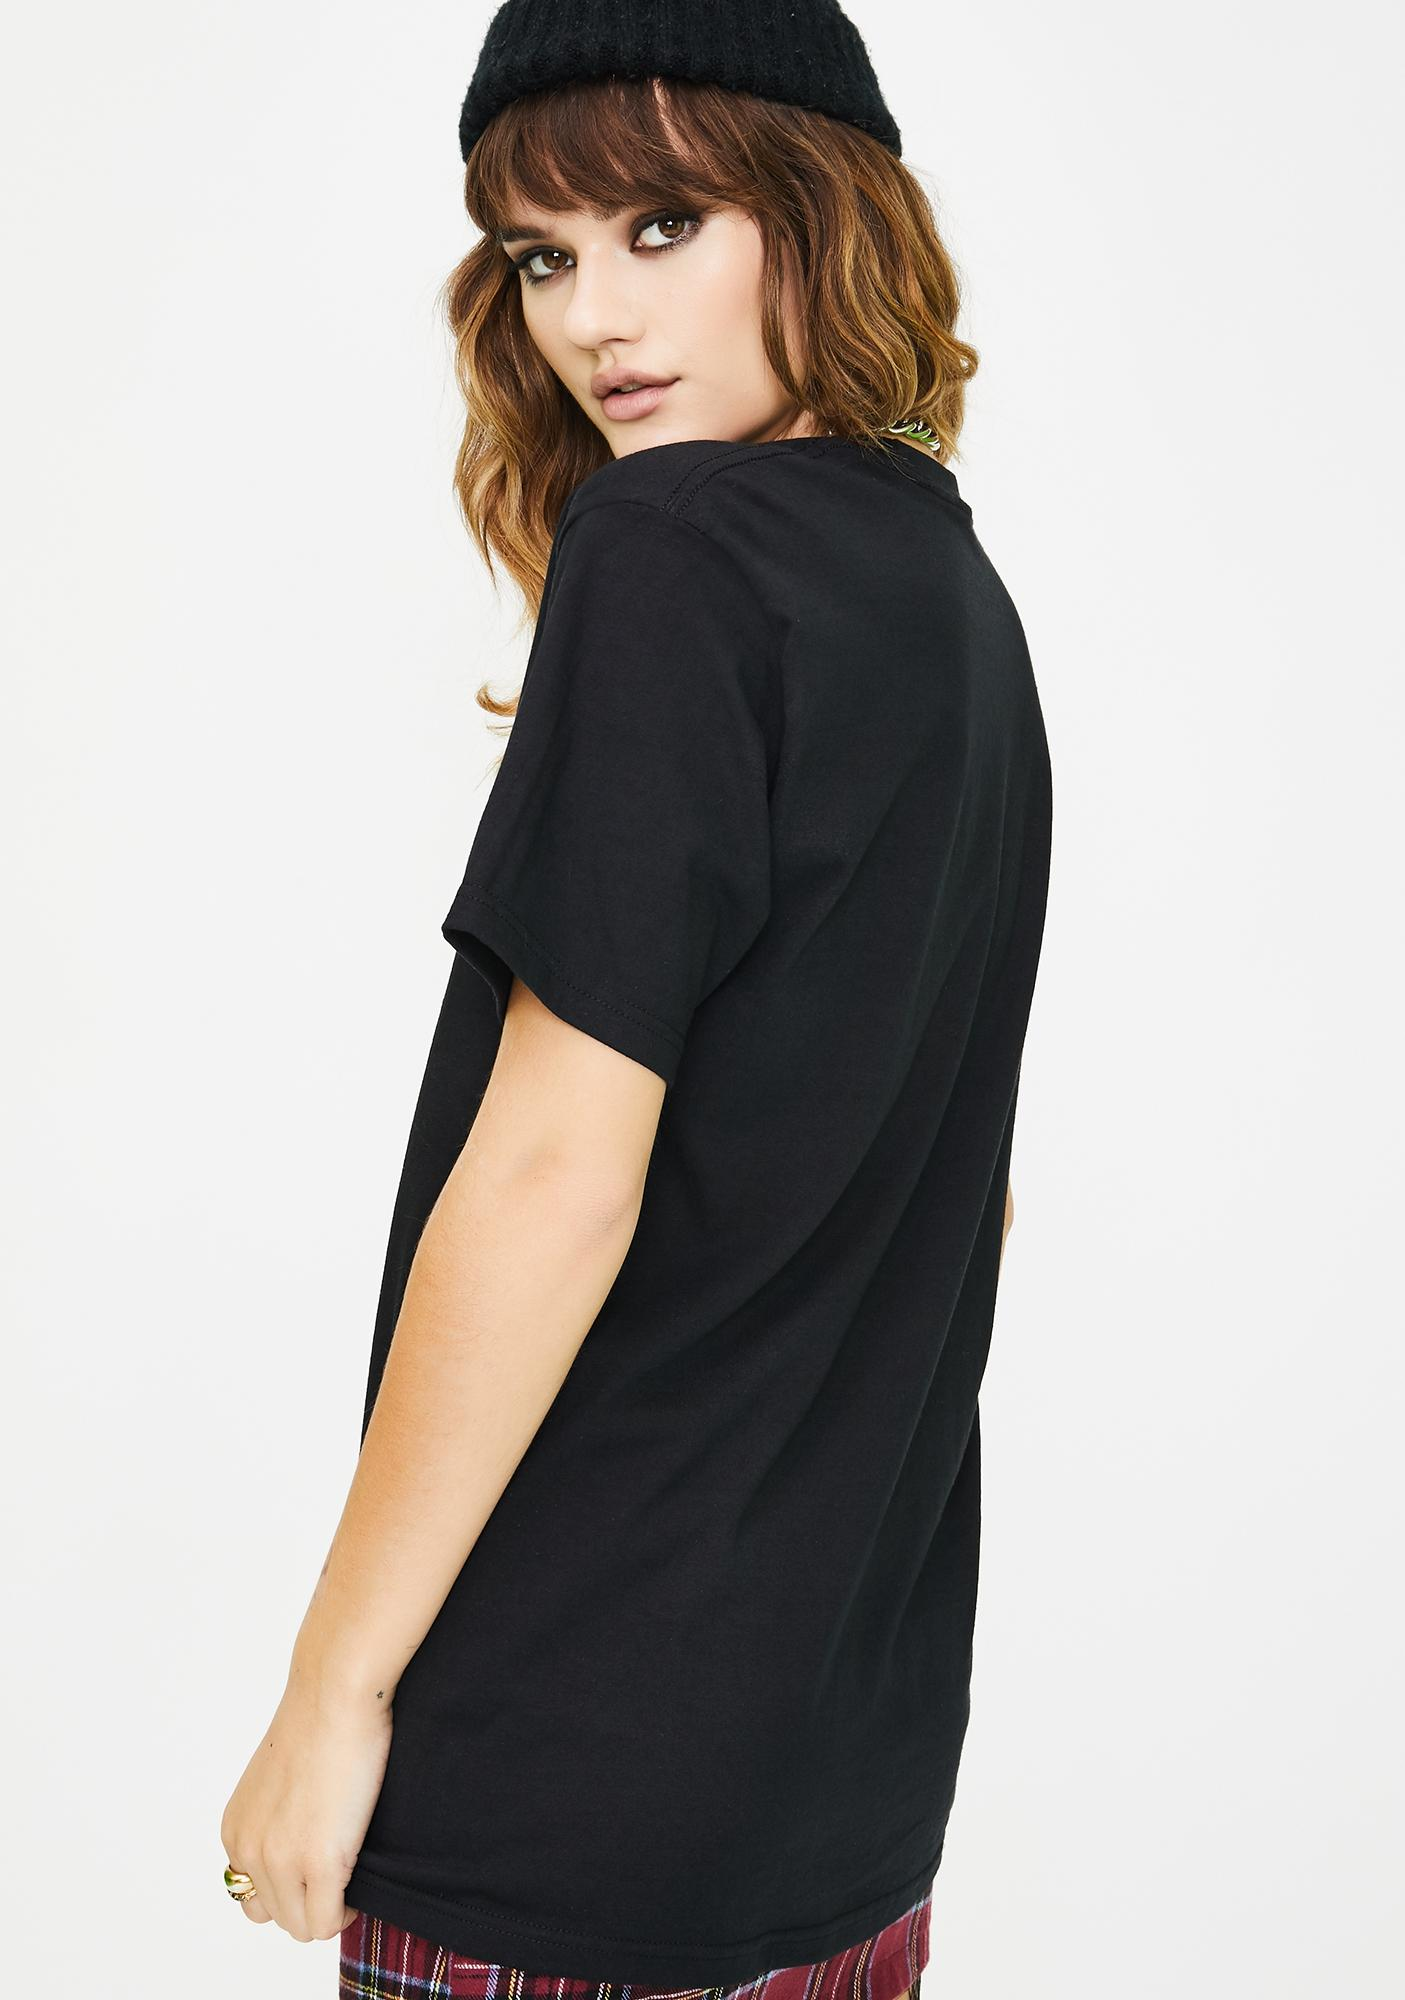 ILL INTENT Lust Graphic Tee